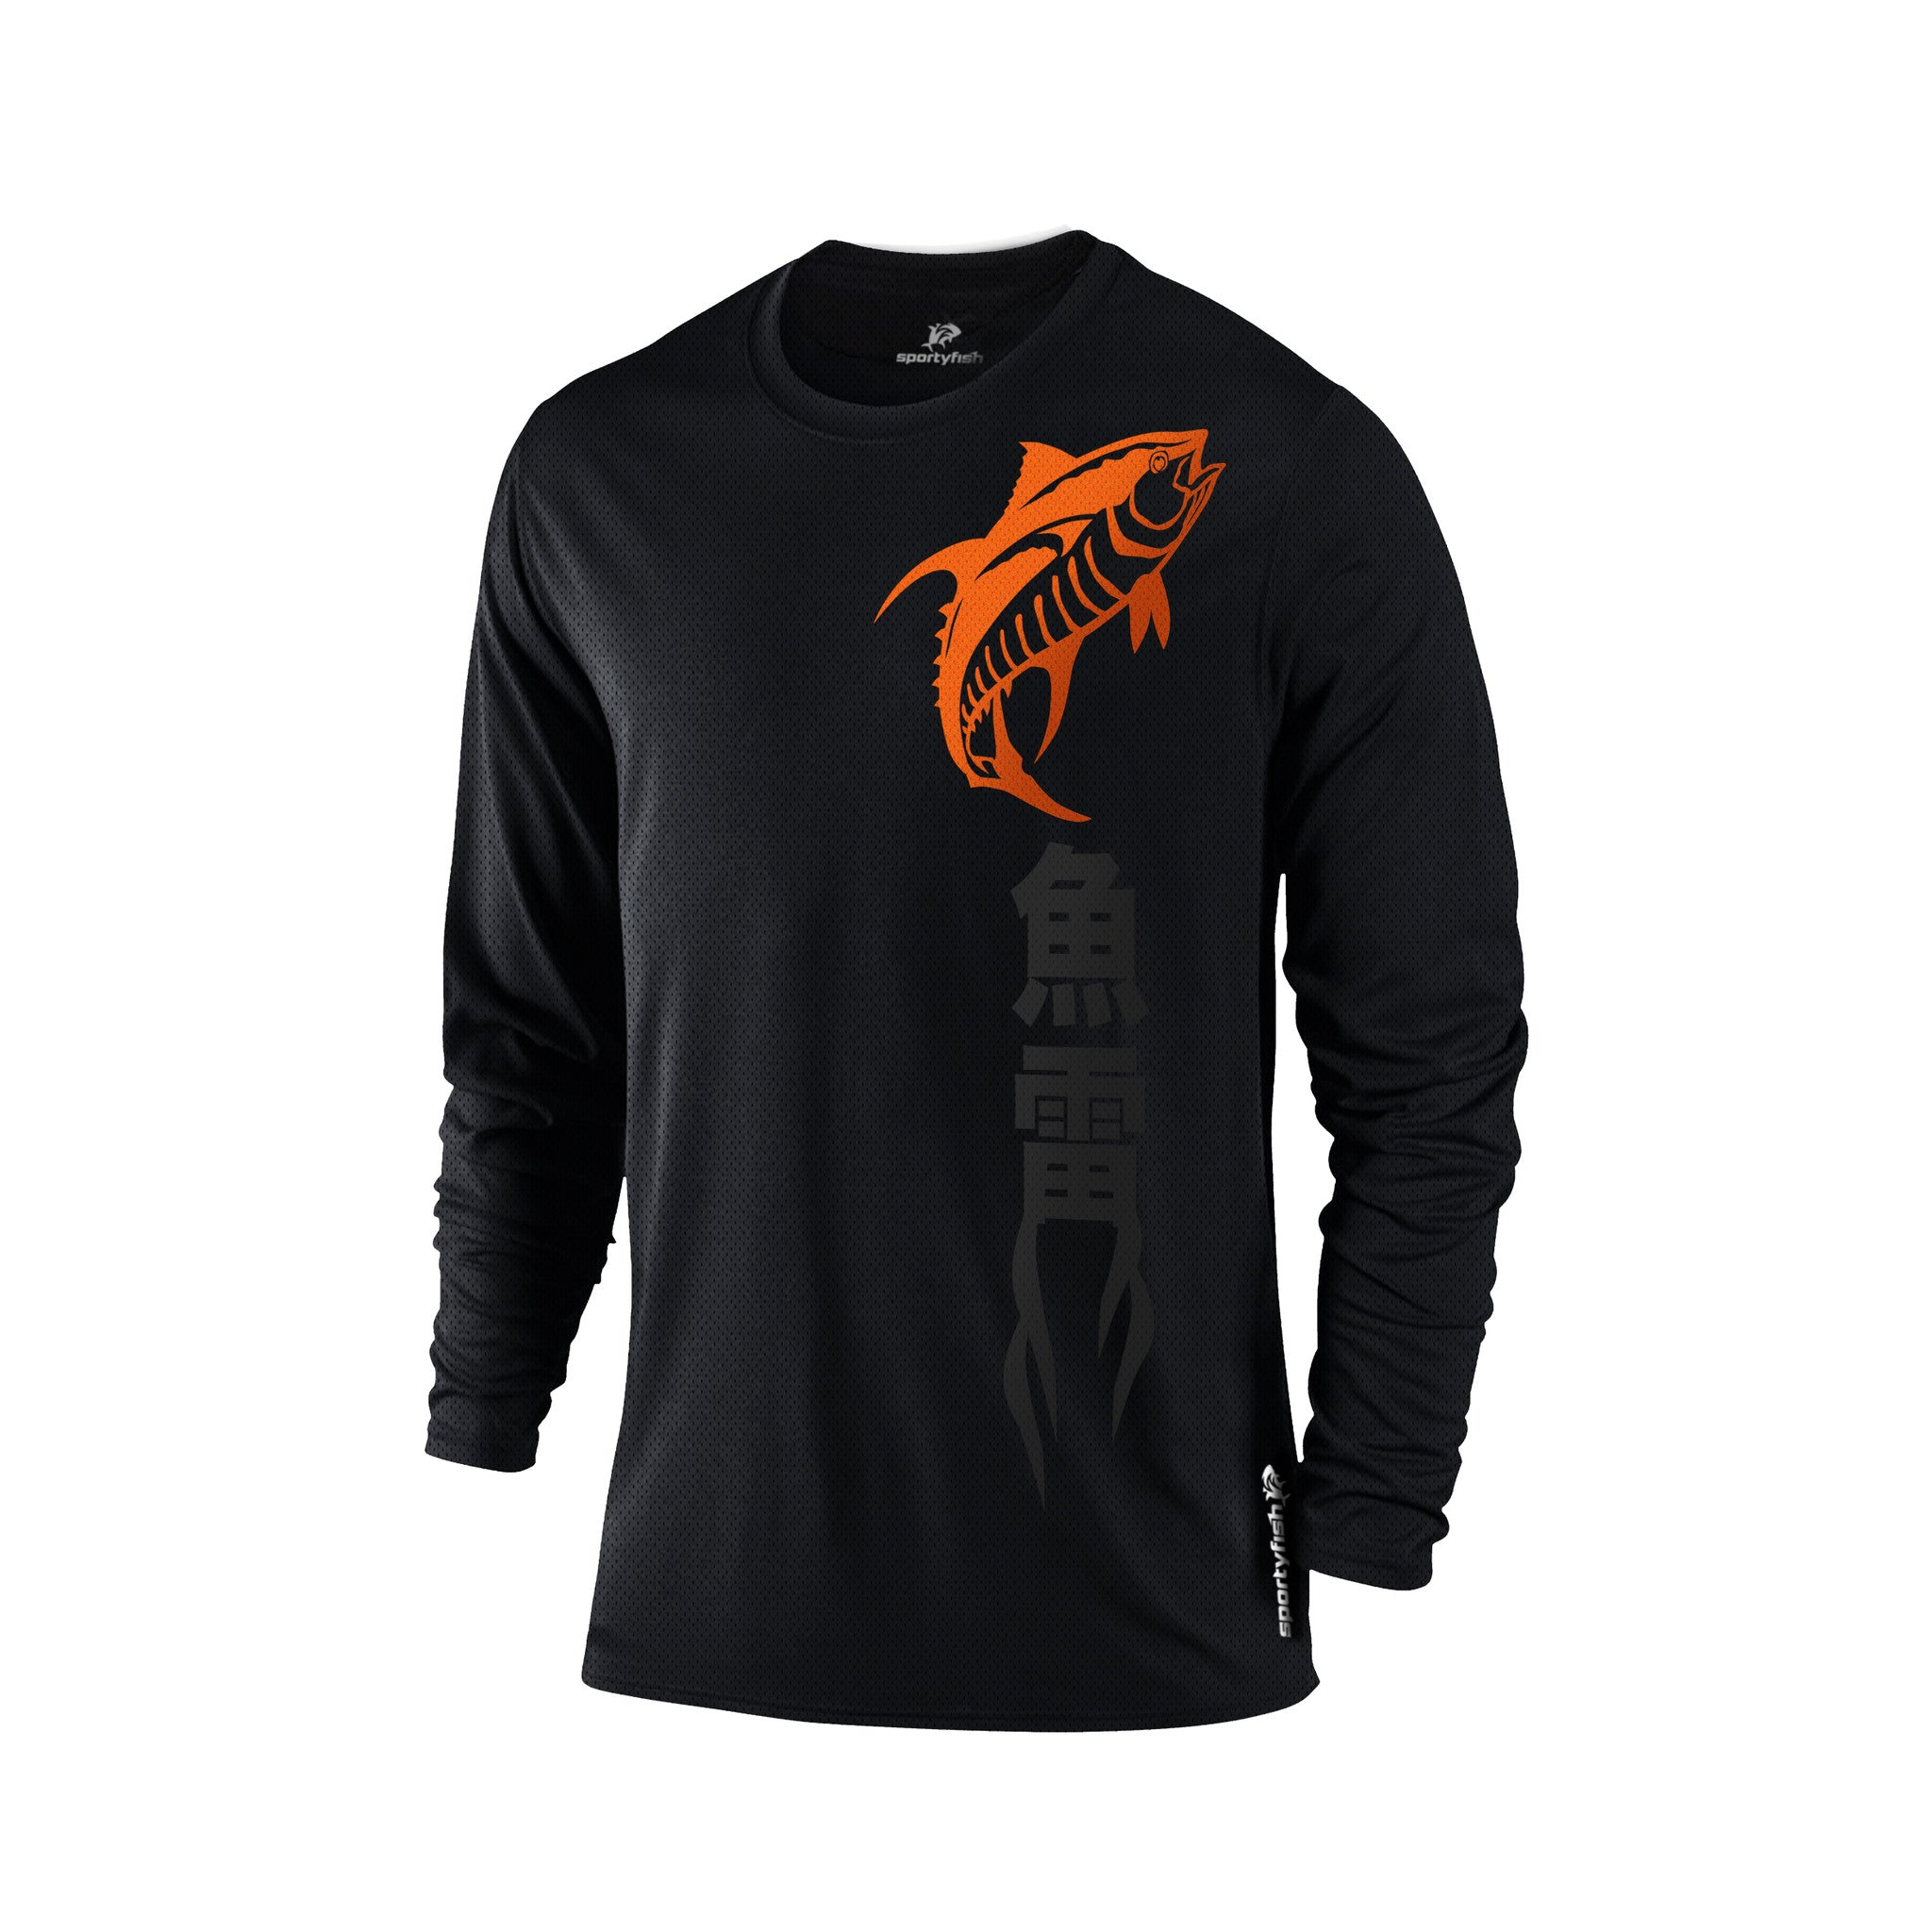 SportyFish Black Series Long-sleeves T-shirt(front view): Yellowfin Tuna(In Japanese words)